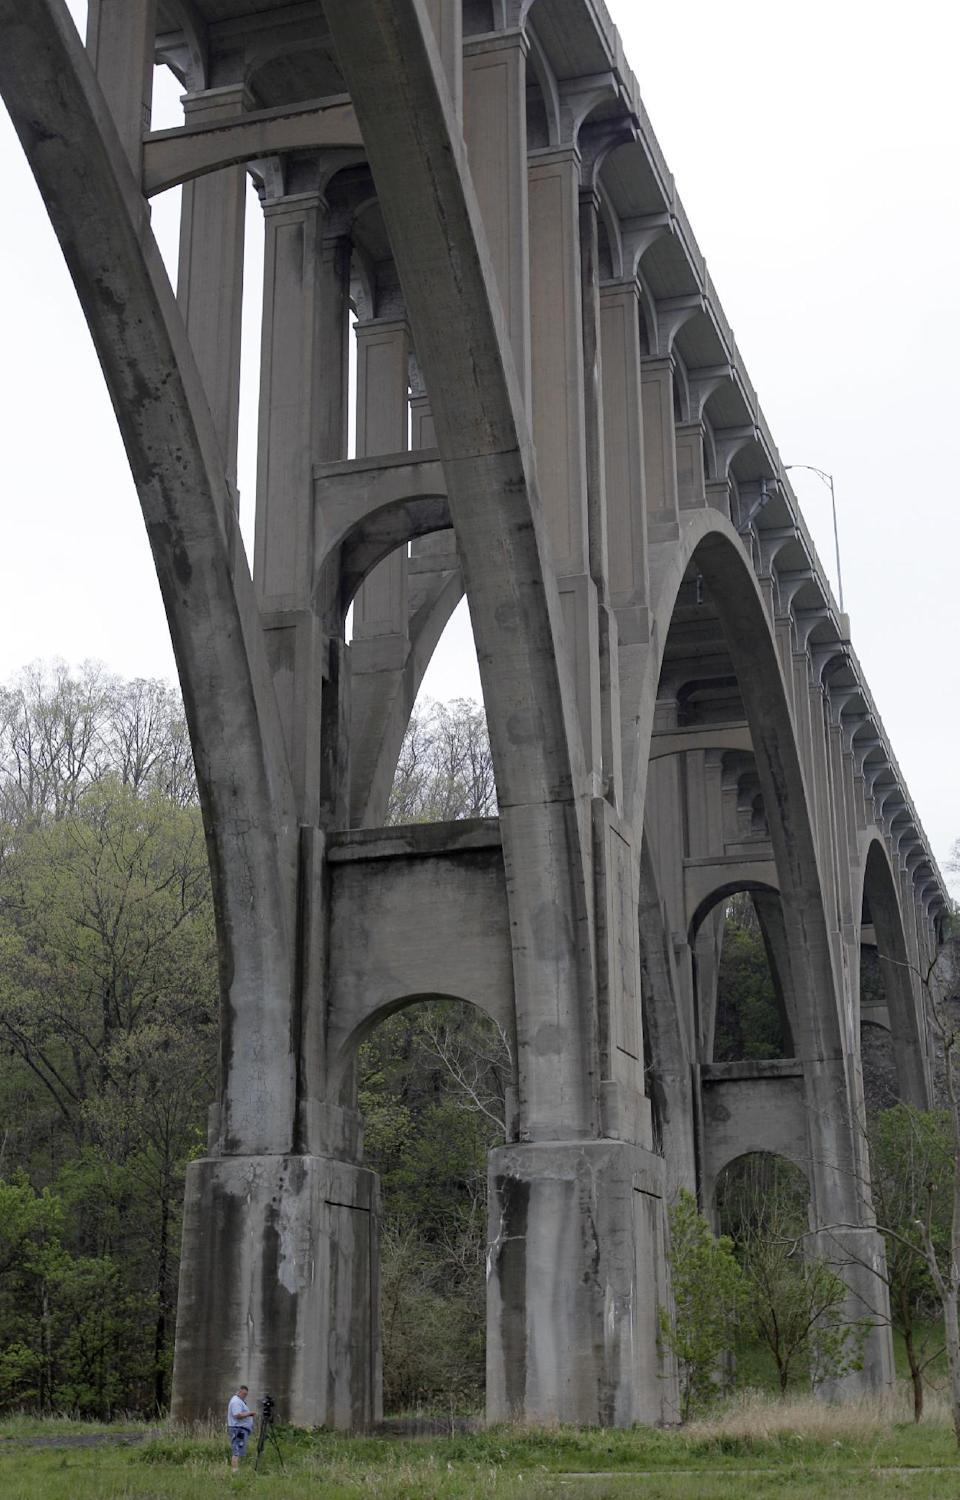 A cameraman stands beneath a bridge at the Cuyahoga Valley National Park in Brecksville, Ohio, on Tuesday, May 1, 2012. Five men have been arrested for conspiring to blow up the high level bridge over the Cuyahoga River valley, but there was no danger to the public because the explosives were inoperable and were controlled by an undercover FBI employee, the agency said Tuesday in announcing the men's arrests. (AP Photo/Amy Sancetta)